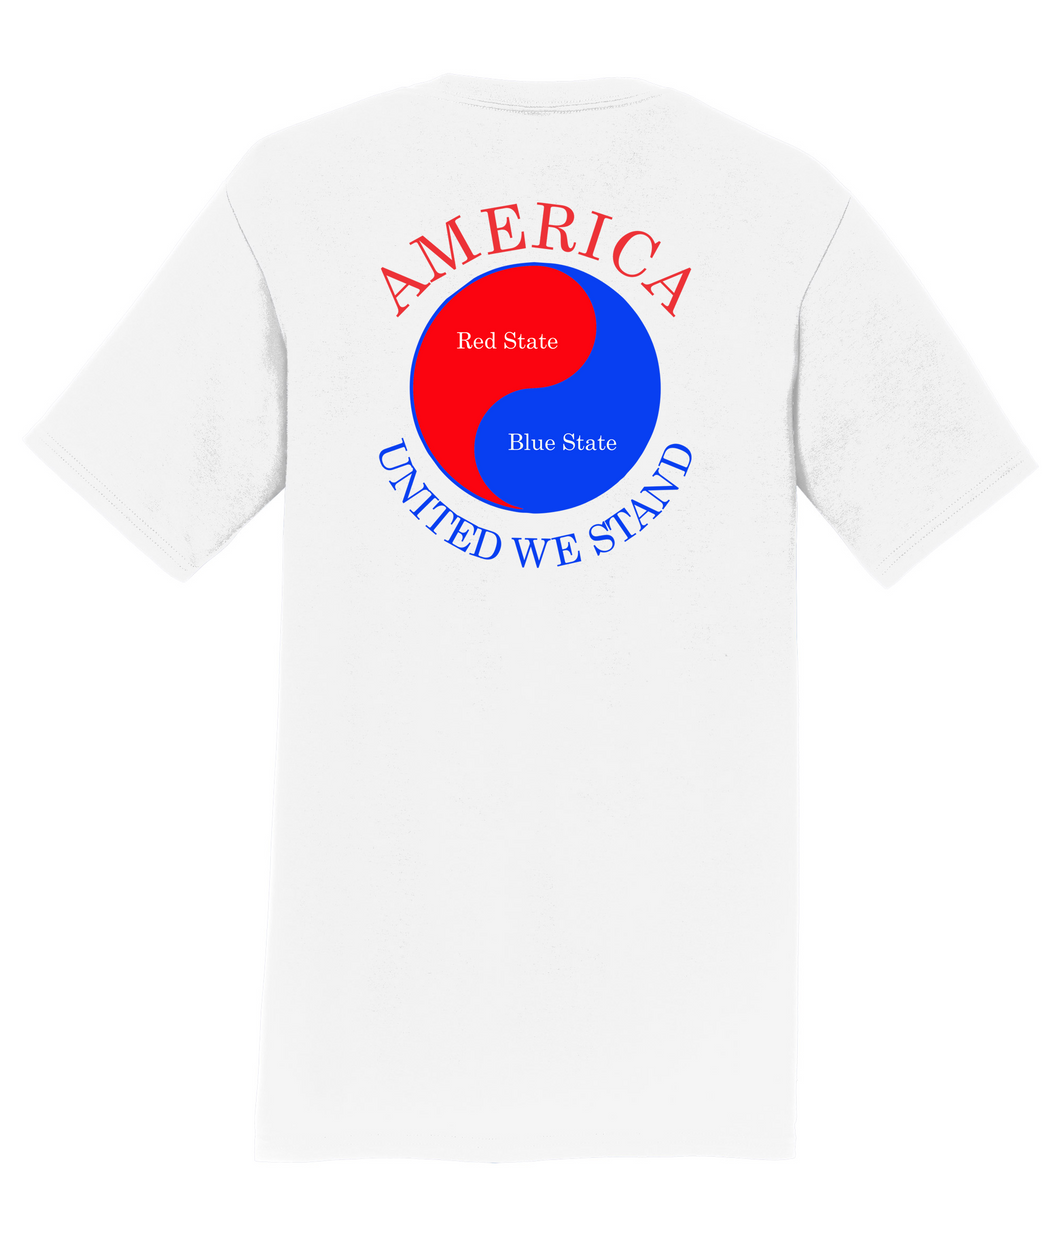 America United We Stand T-shirt